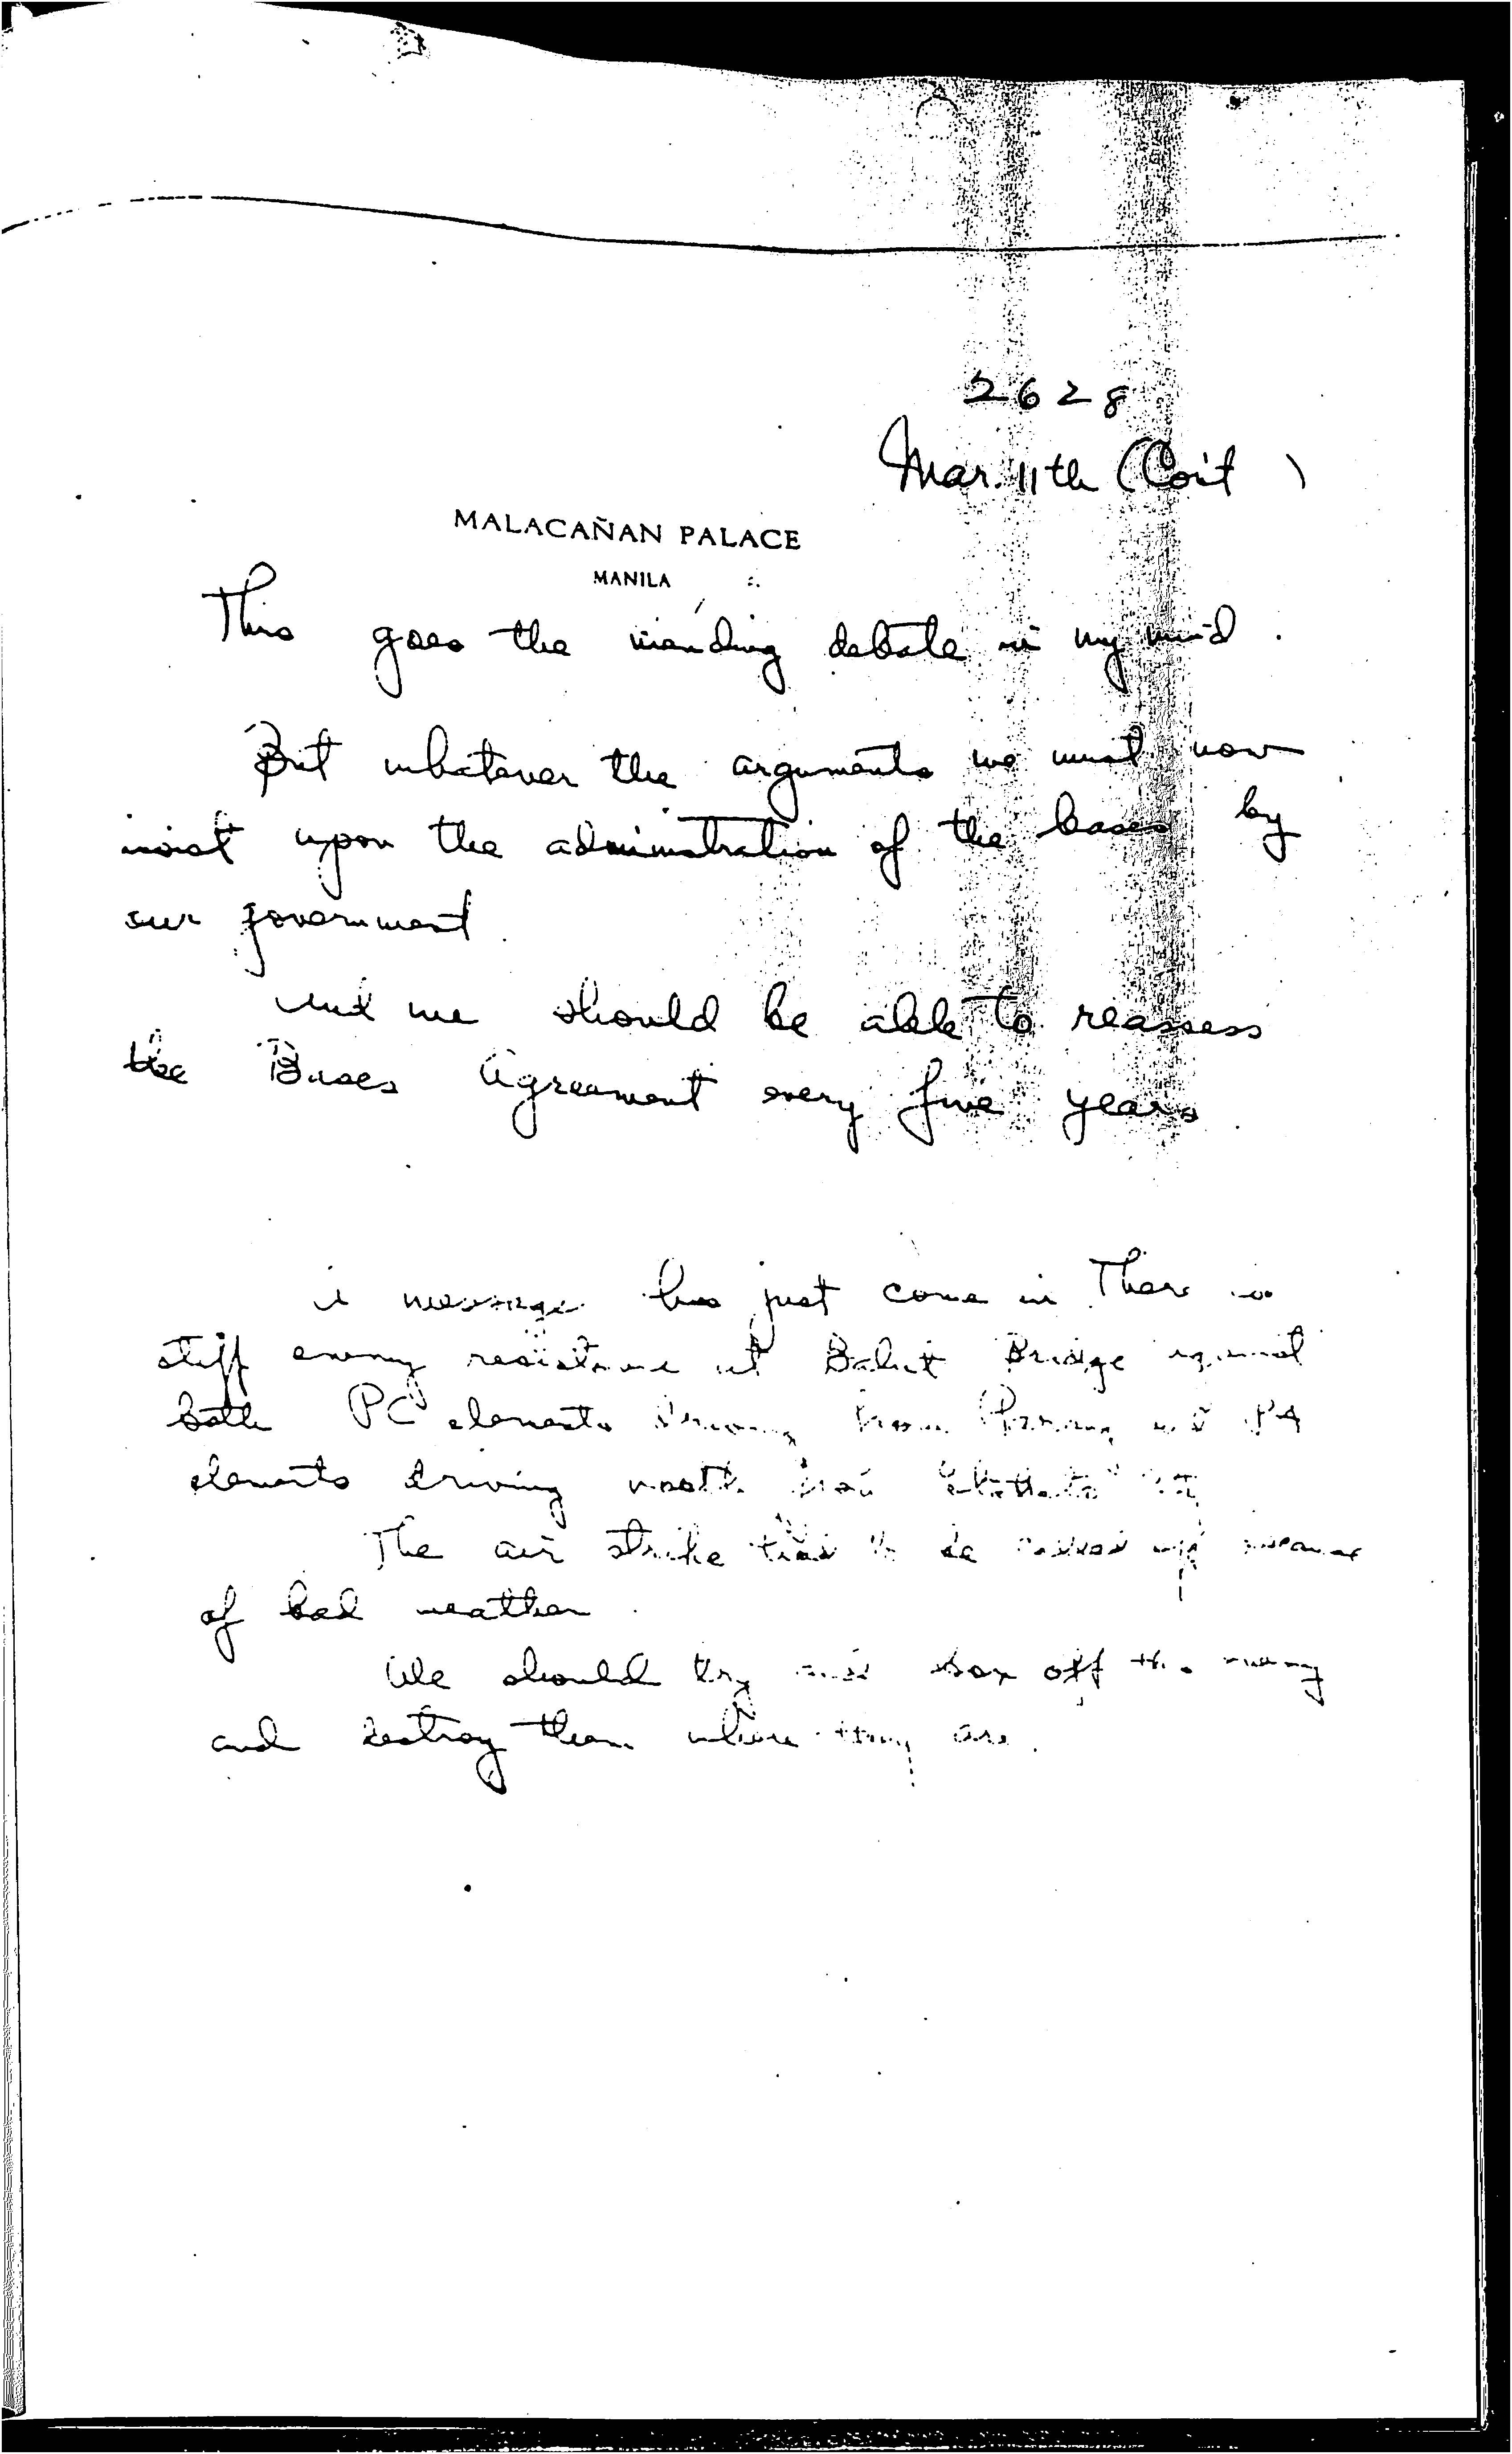 1973 Marcos Diary Black Book_Page_053